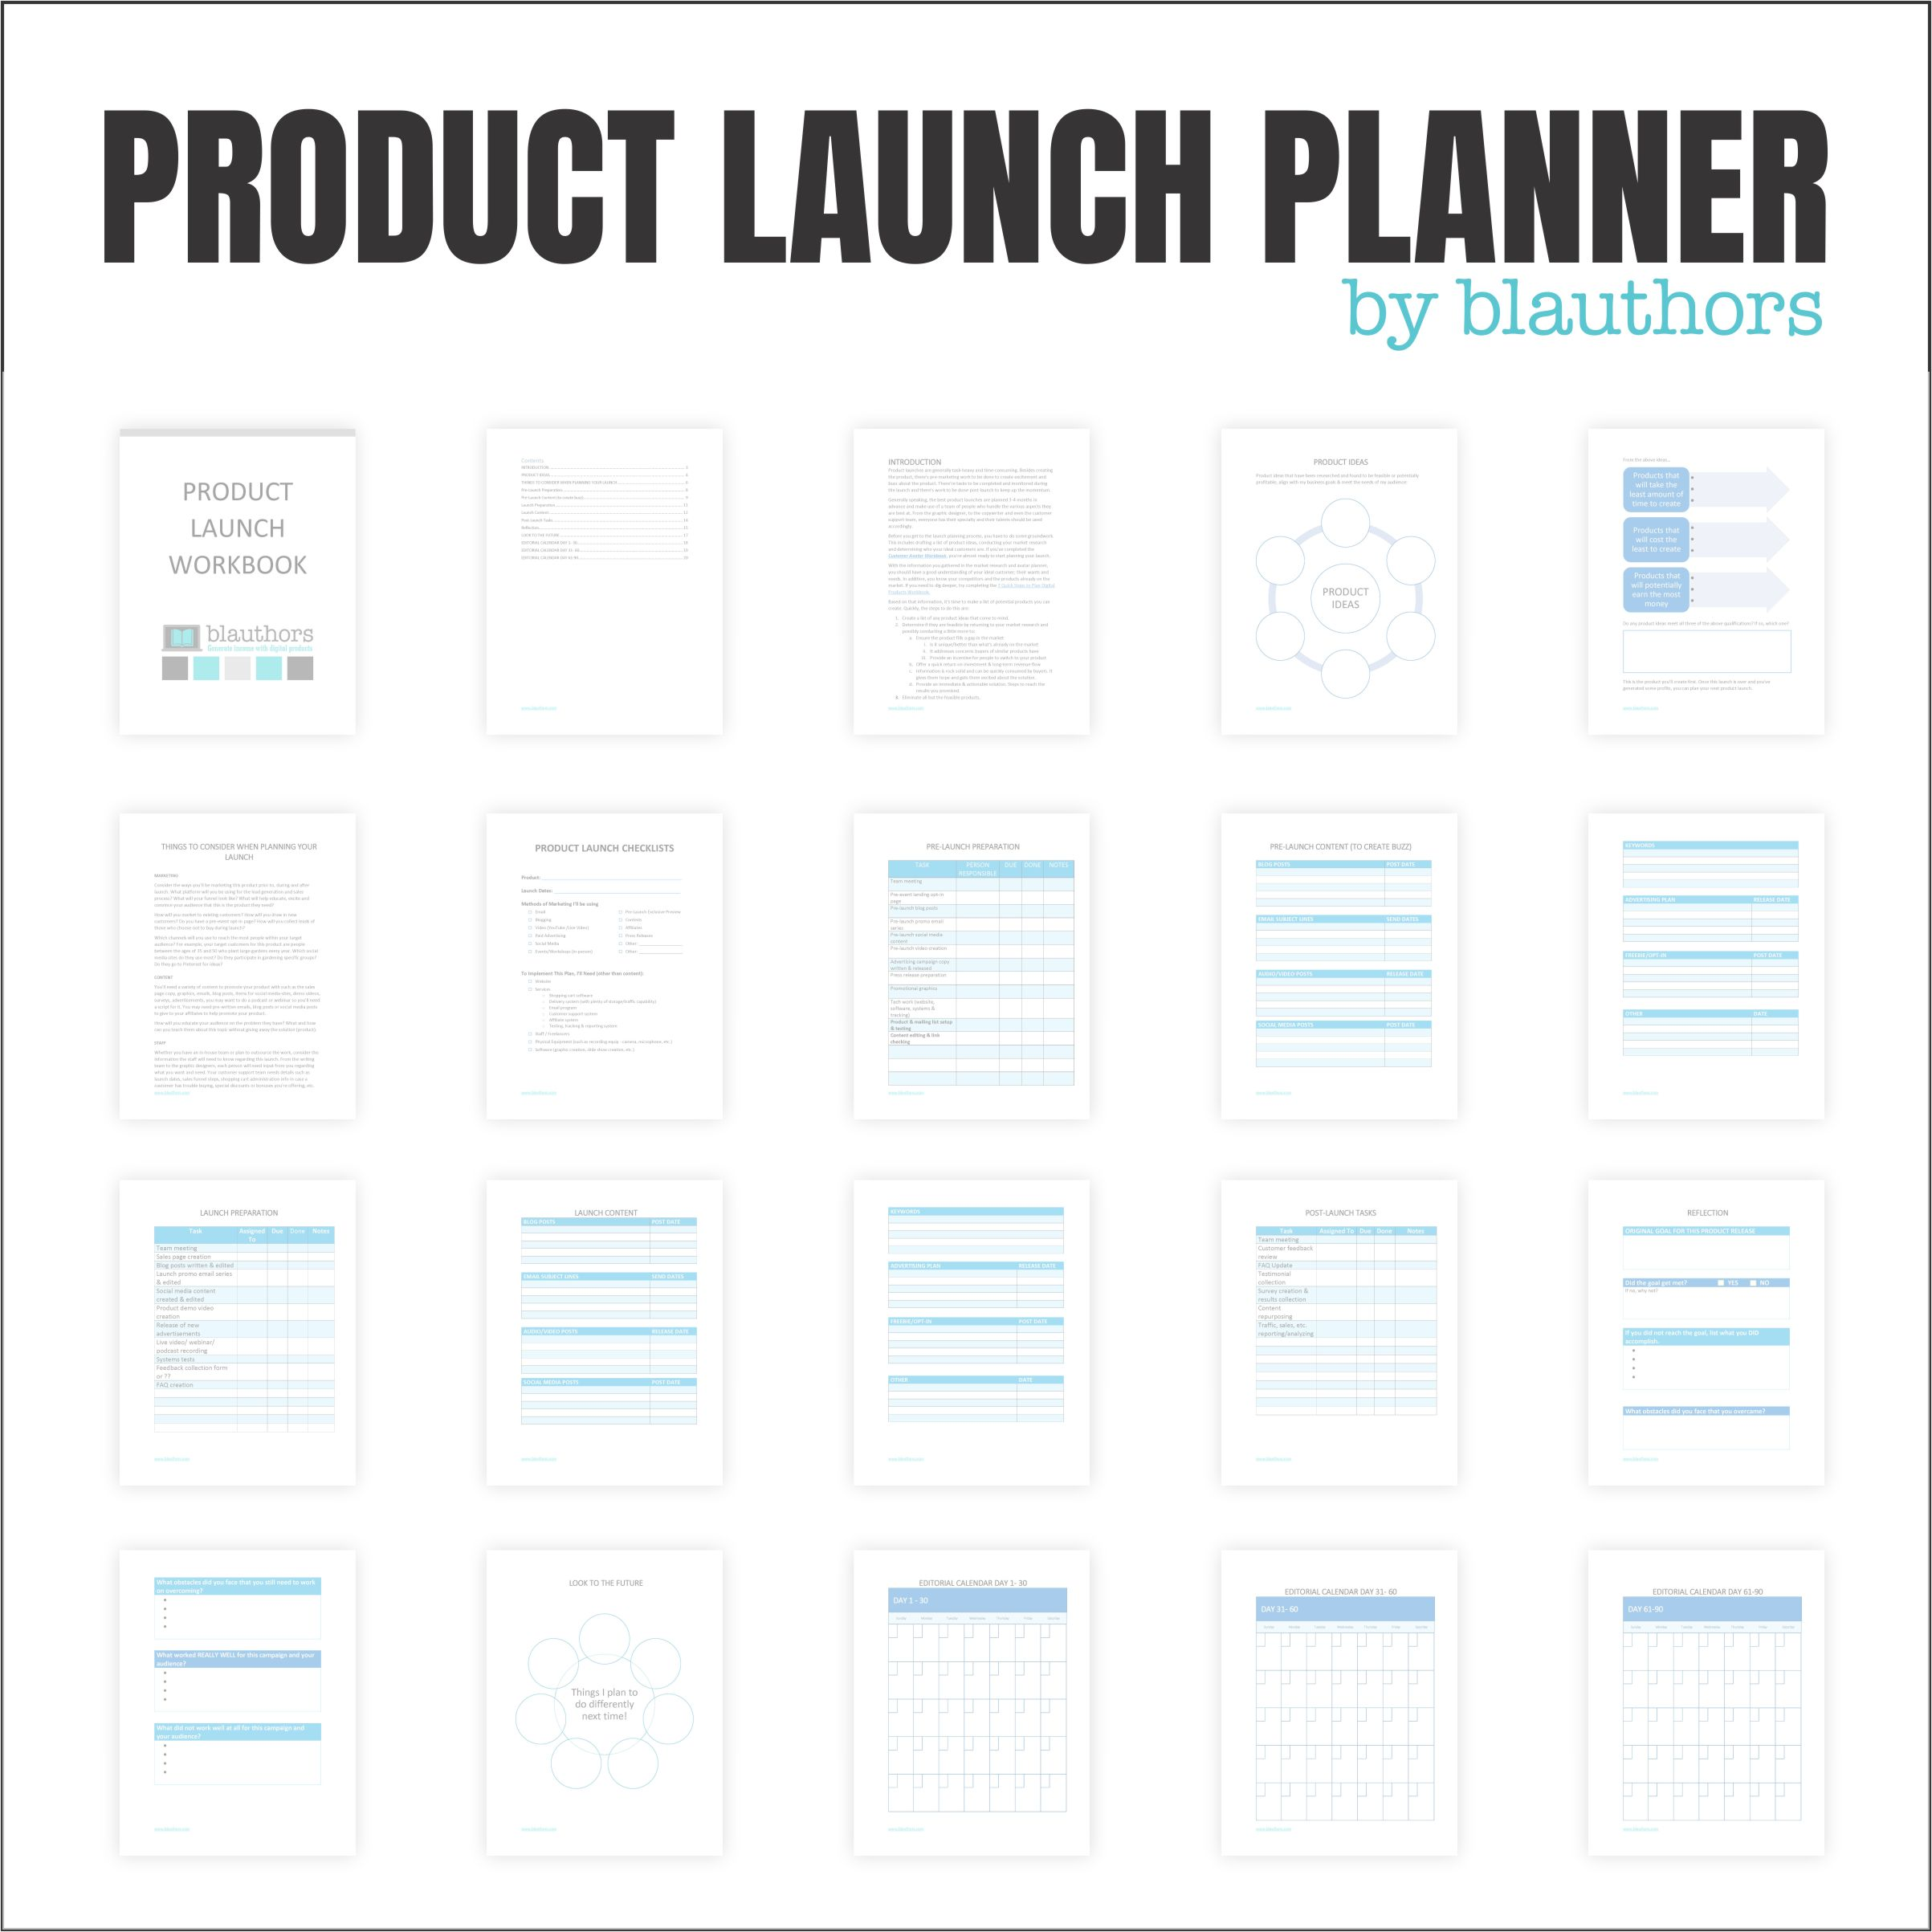 Product launches can be so task-heavy and time-consuming. They can make you feel like you have no clue where to start.  This Product Launch Workbook walks you step by step through the process to complete an efficient product launch.  By completing the workbook pages, you will learn as you go how to launch your product.